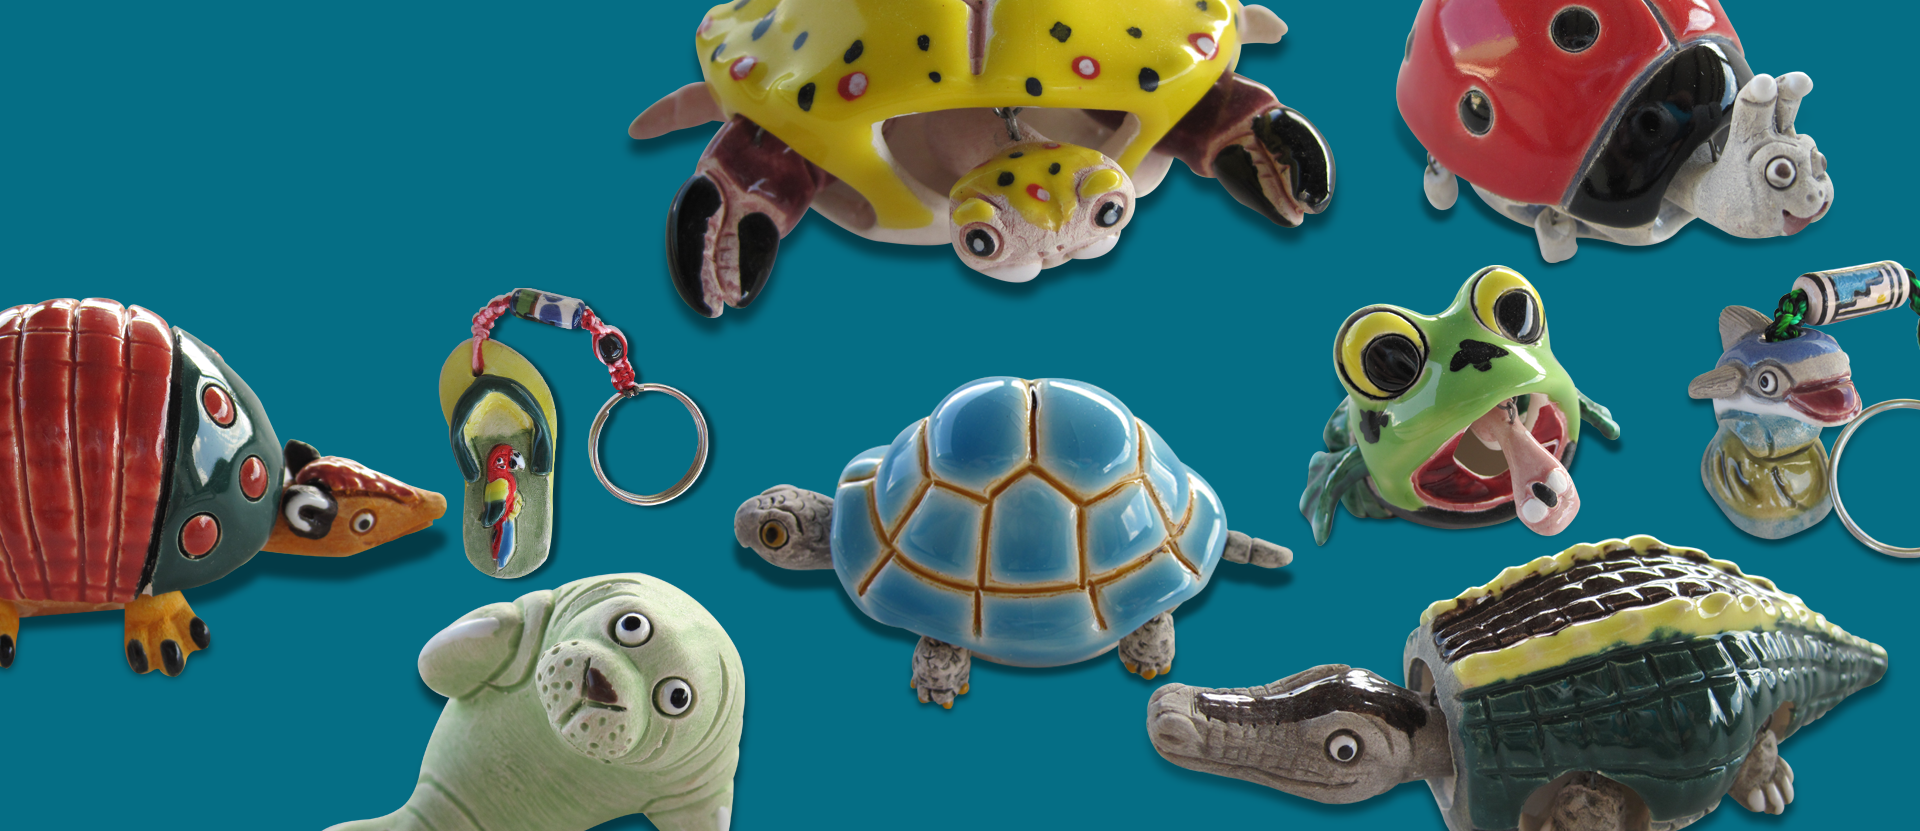 Sculpted Clay Art Figurines & Keychains